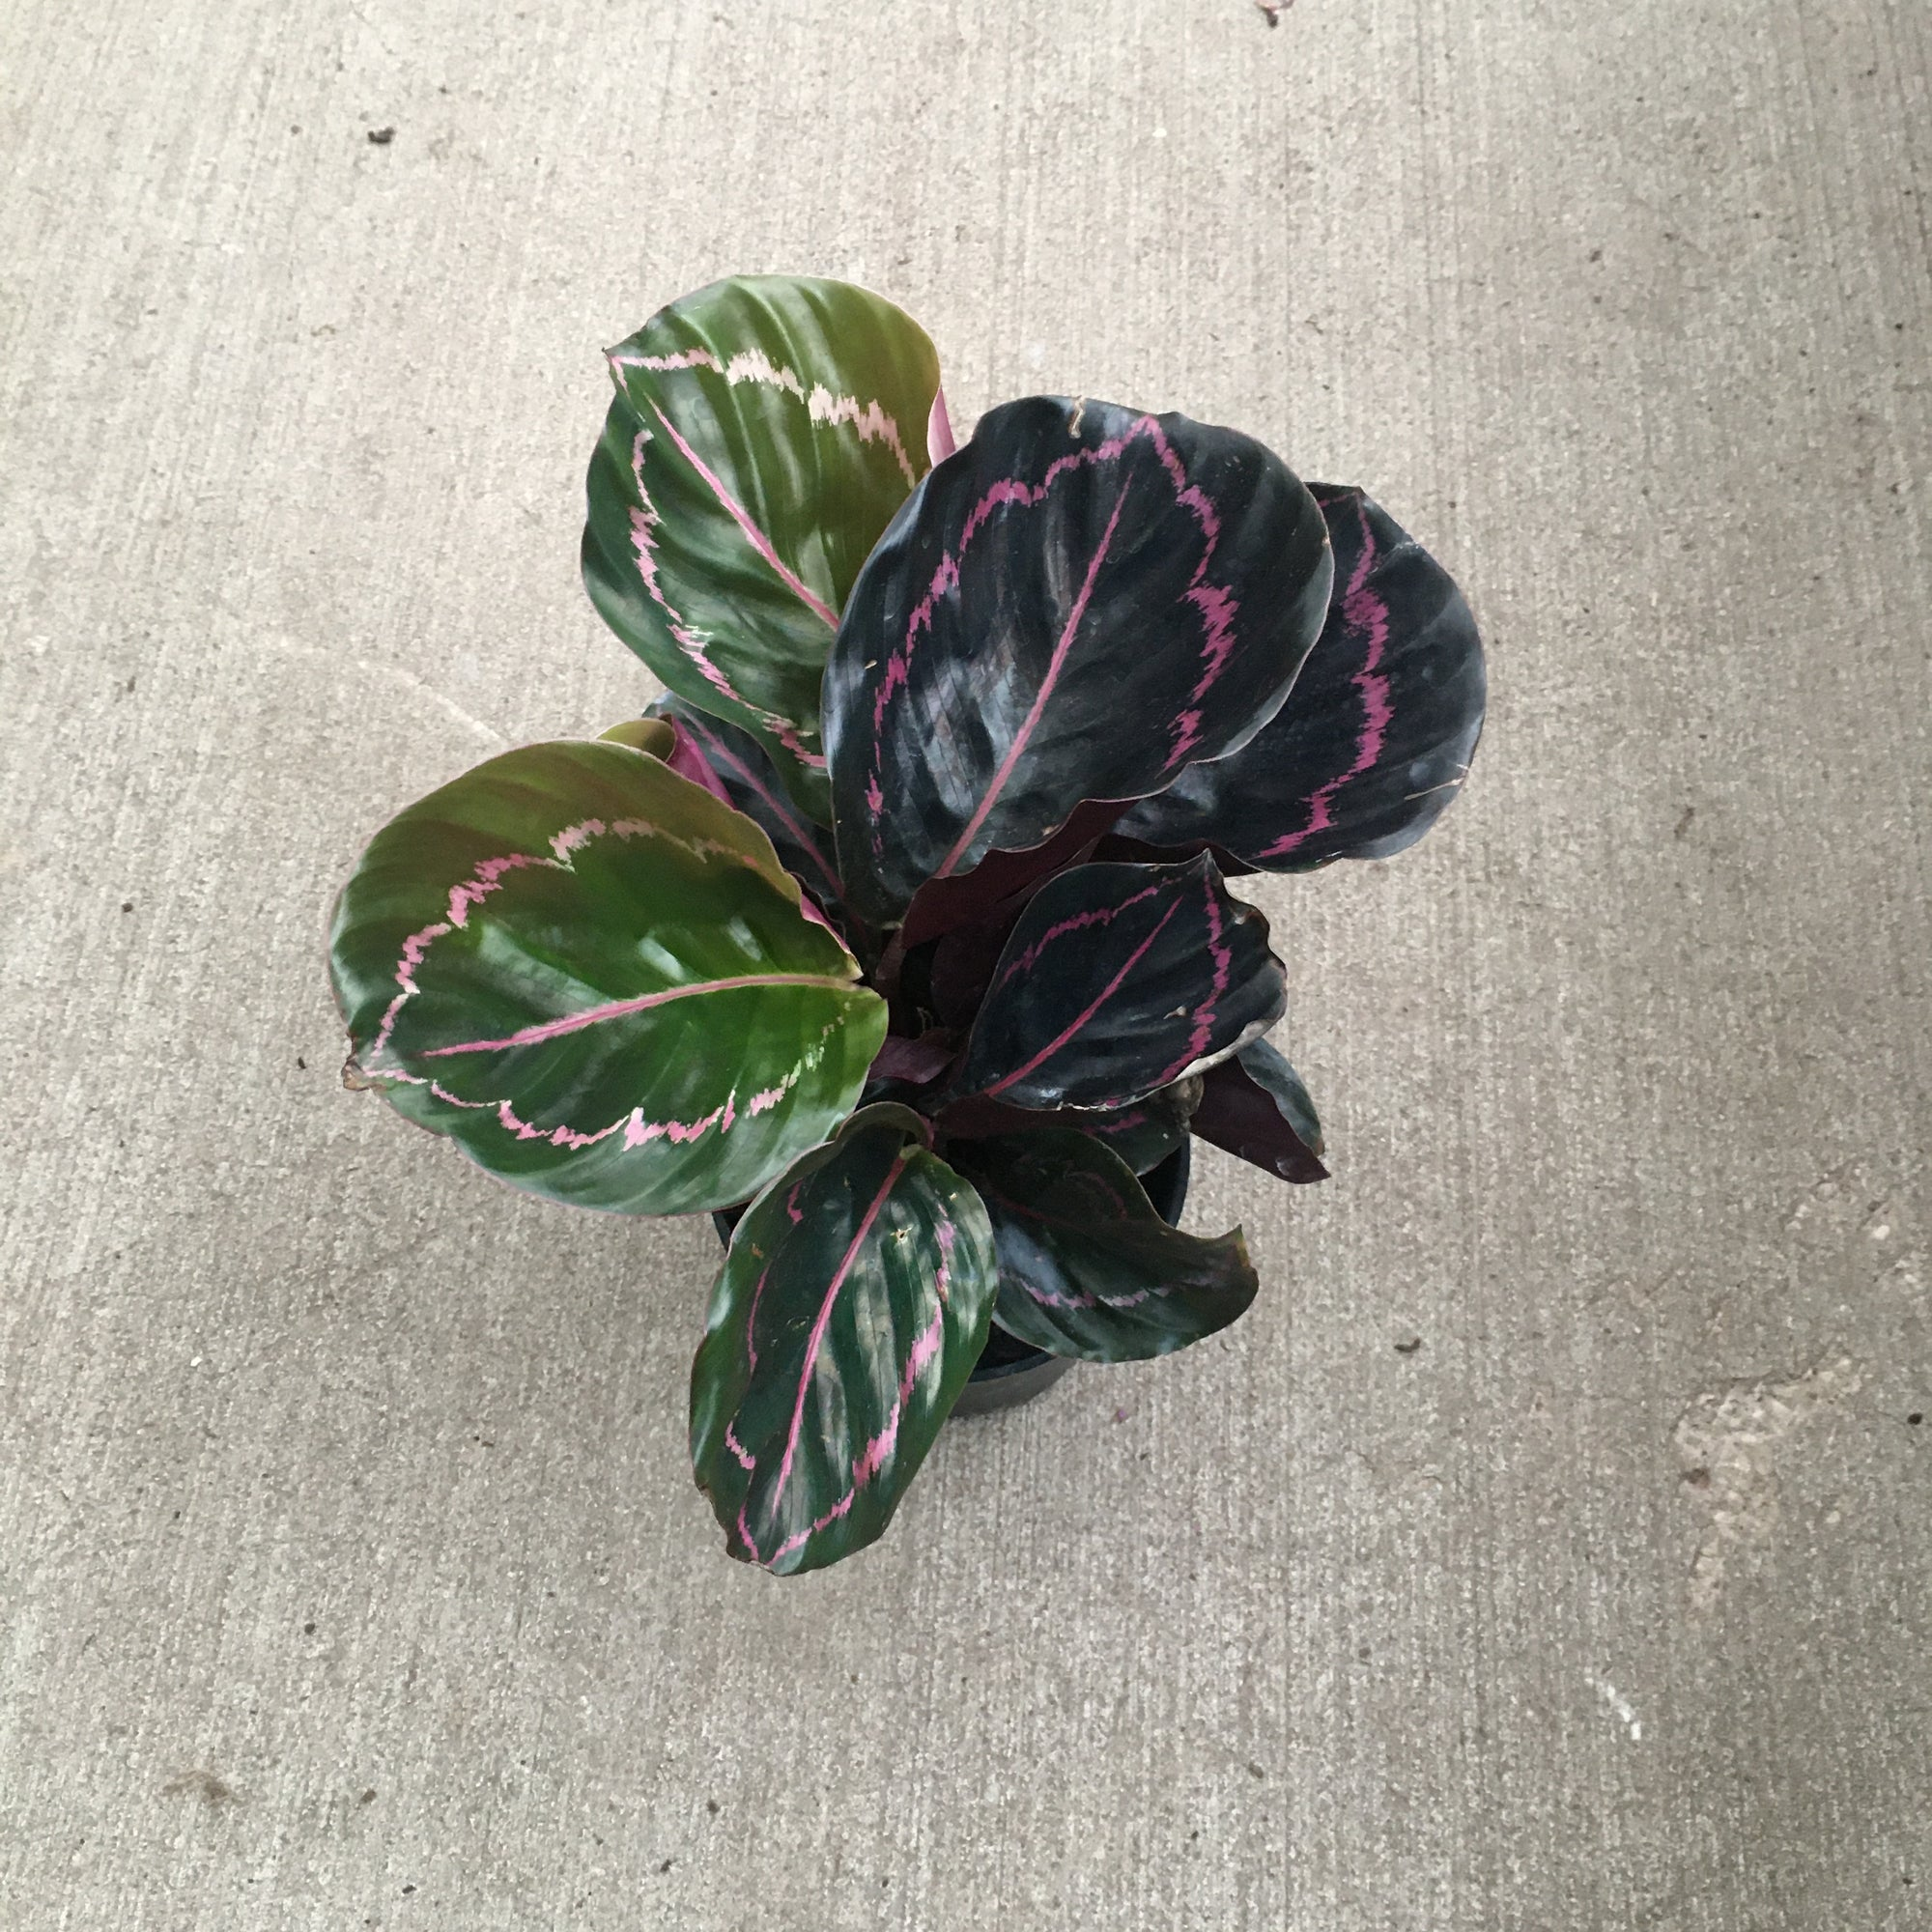 plant with oval green leaves with pink highlights on leaves